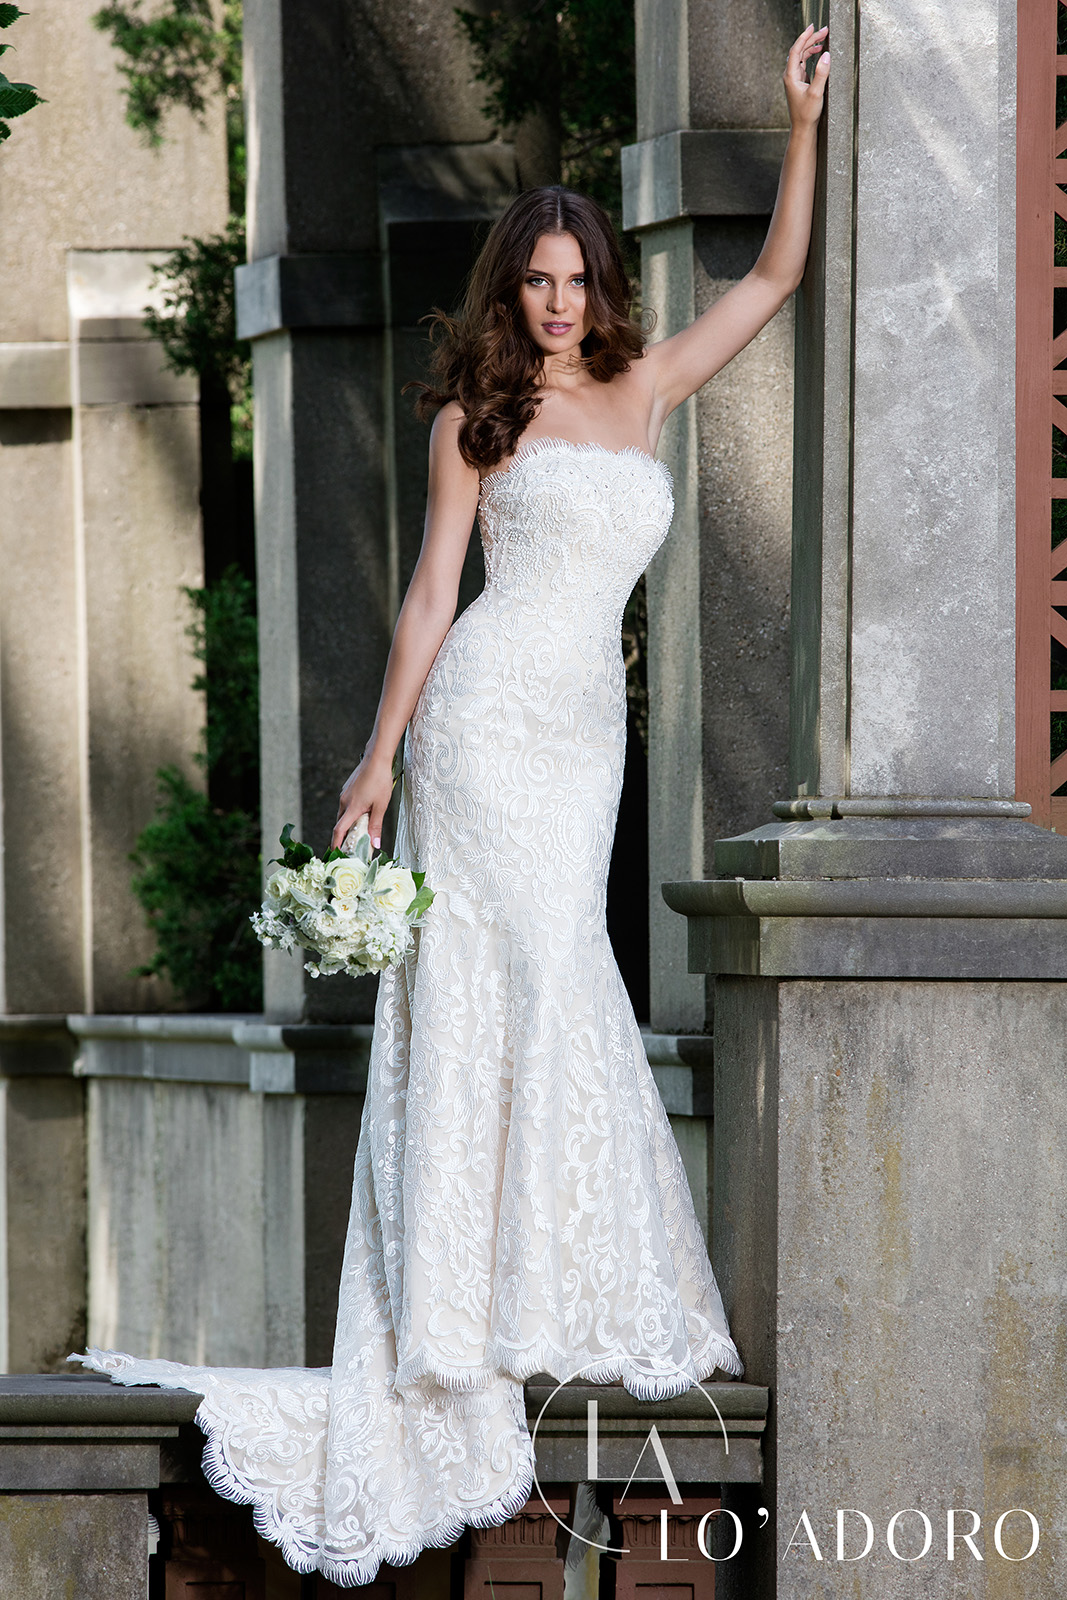 Strapless Fitted Long Lo' Adoro Bridal in Champagne Color